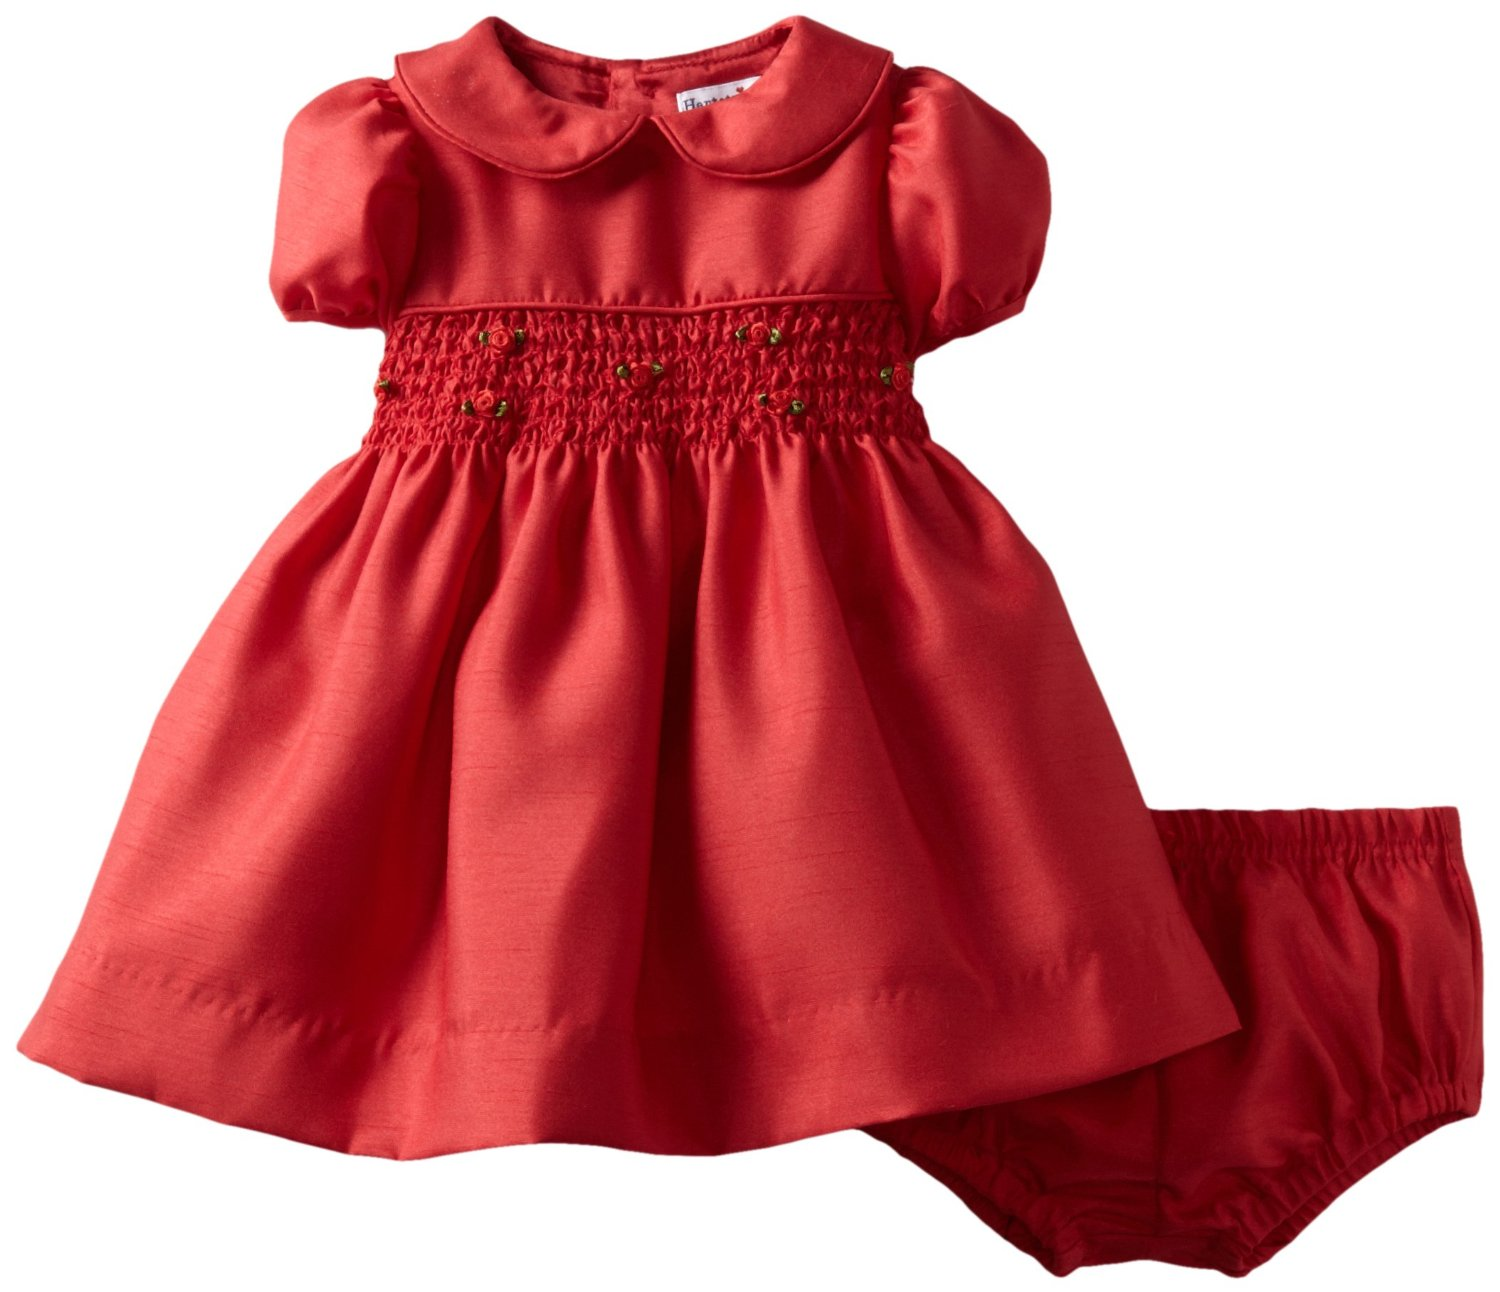 Red Dress clipart smocked Girl Cliparts Zone Diaper outfit